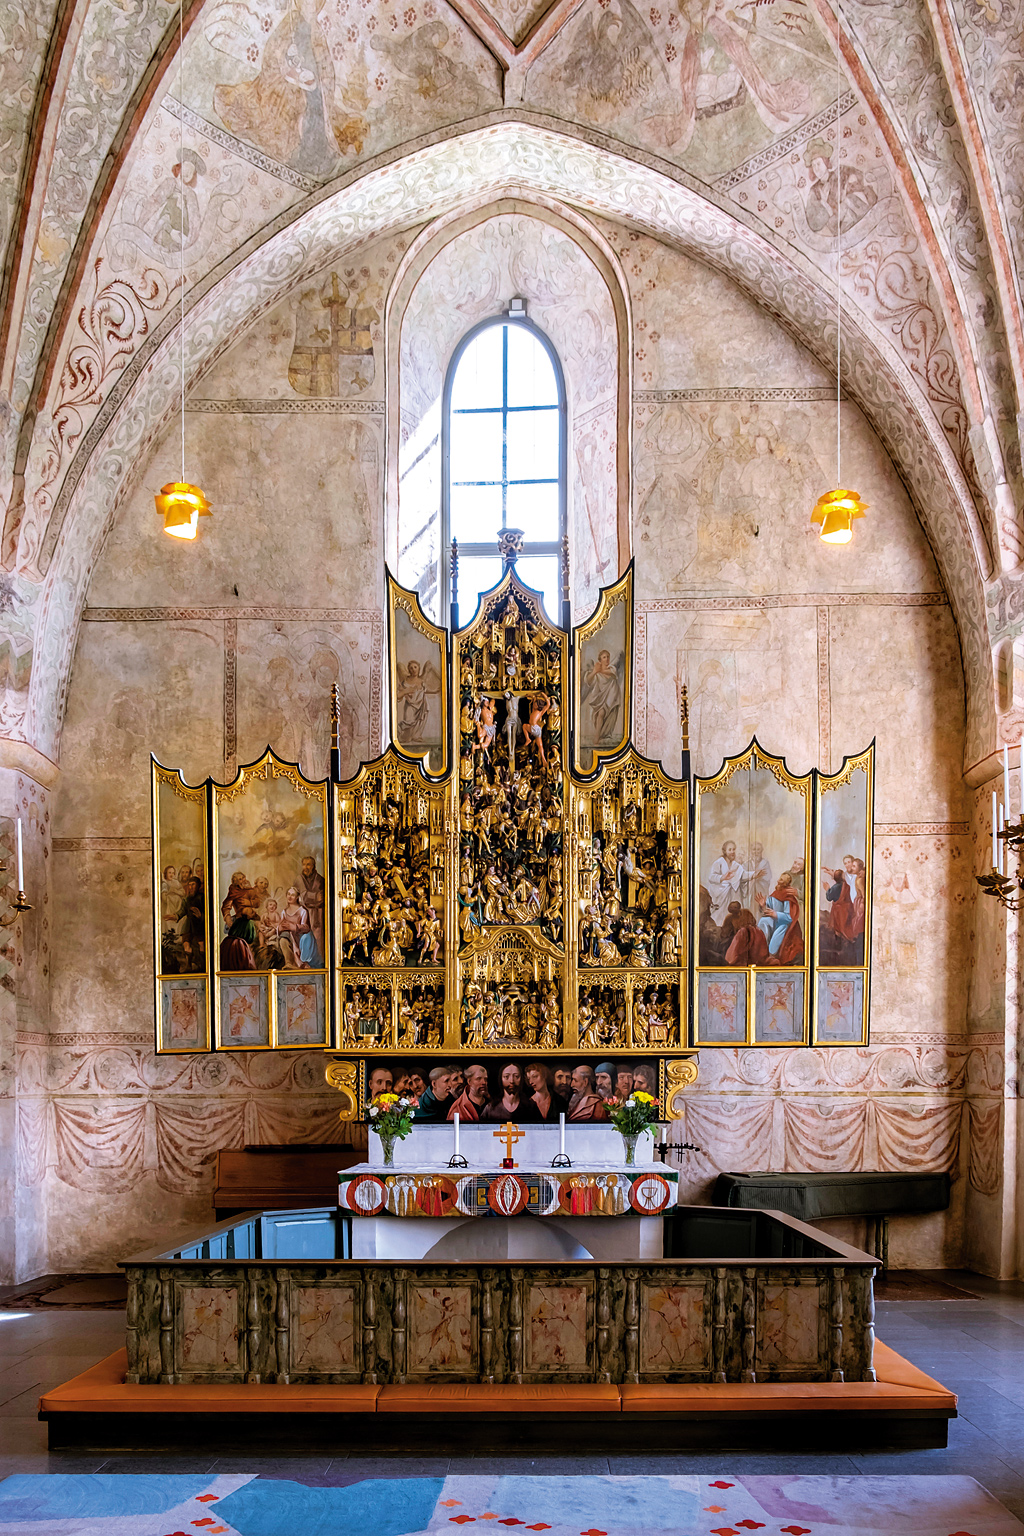 The Altar of Naderlule塃hurch, Gammelstad Church Town, Sweden. The church town has 424 wooden houses which were used to host worshippers on Sundays and during religious festivals.